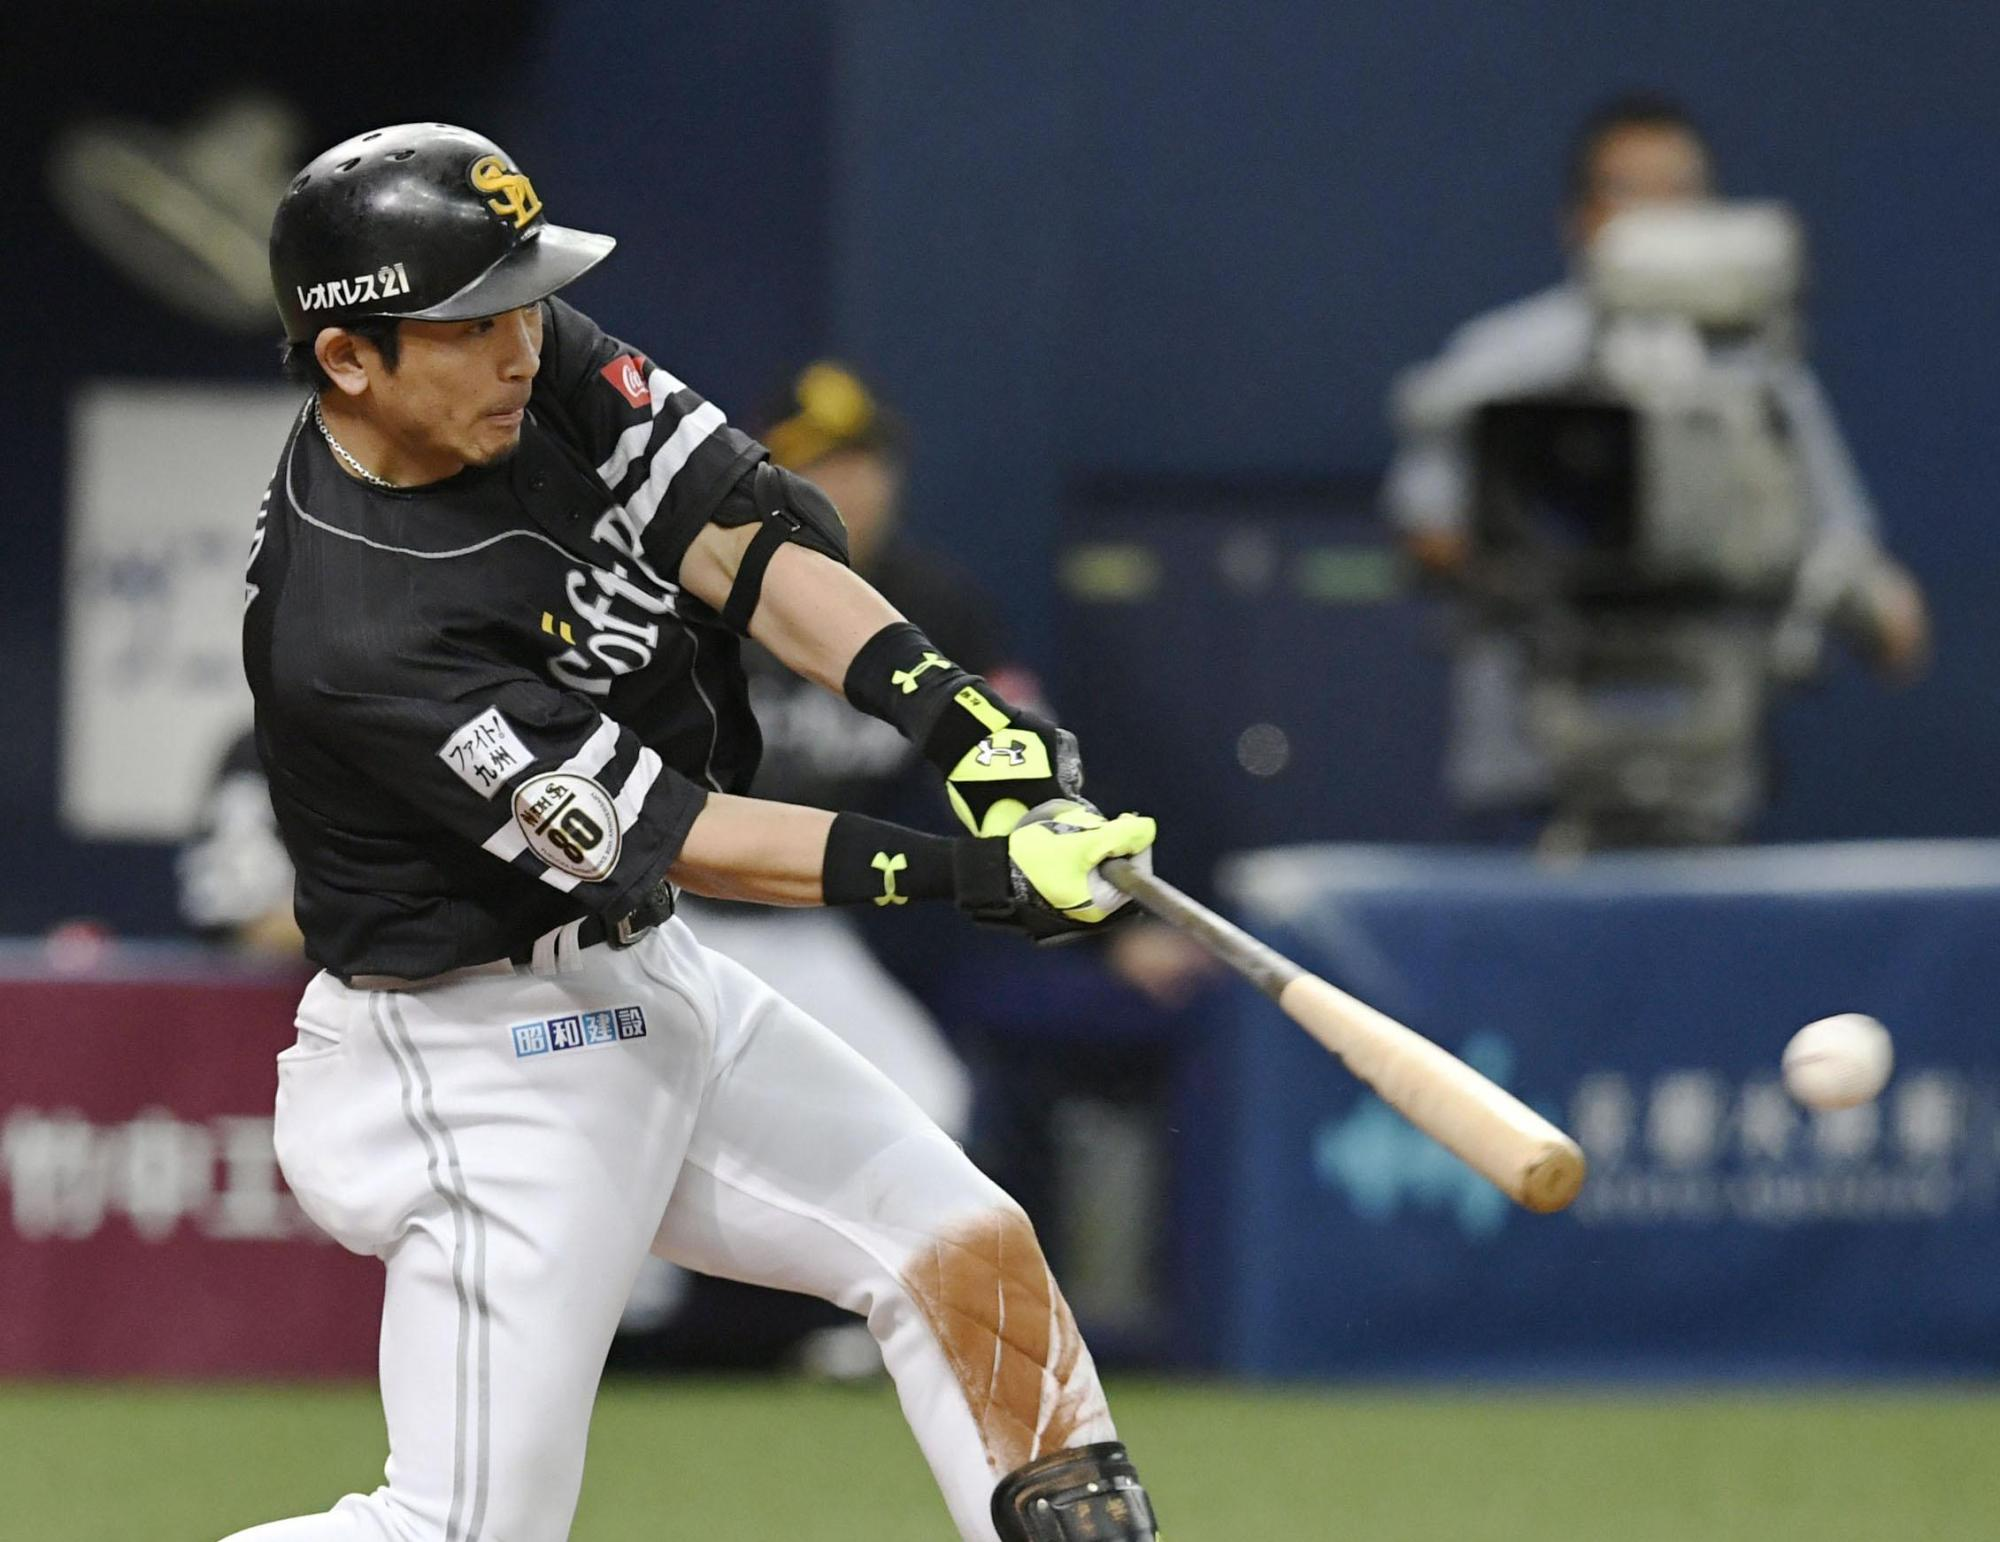 The Hawks' Nobuhiro Matsuda hits a two-run double during the ninth inning against the Buffaloes on Sunday in Osaka. | KYODO